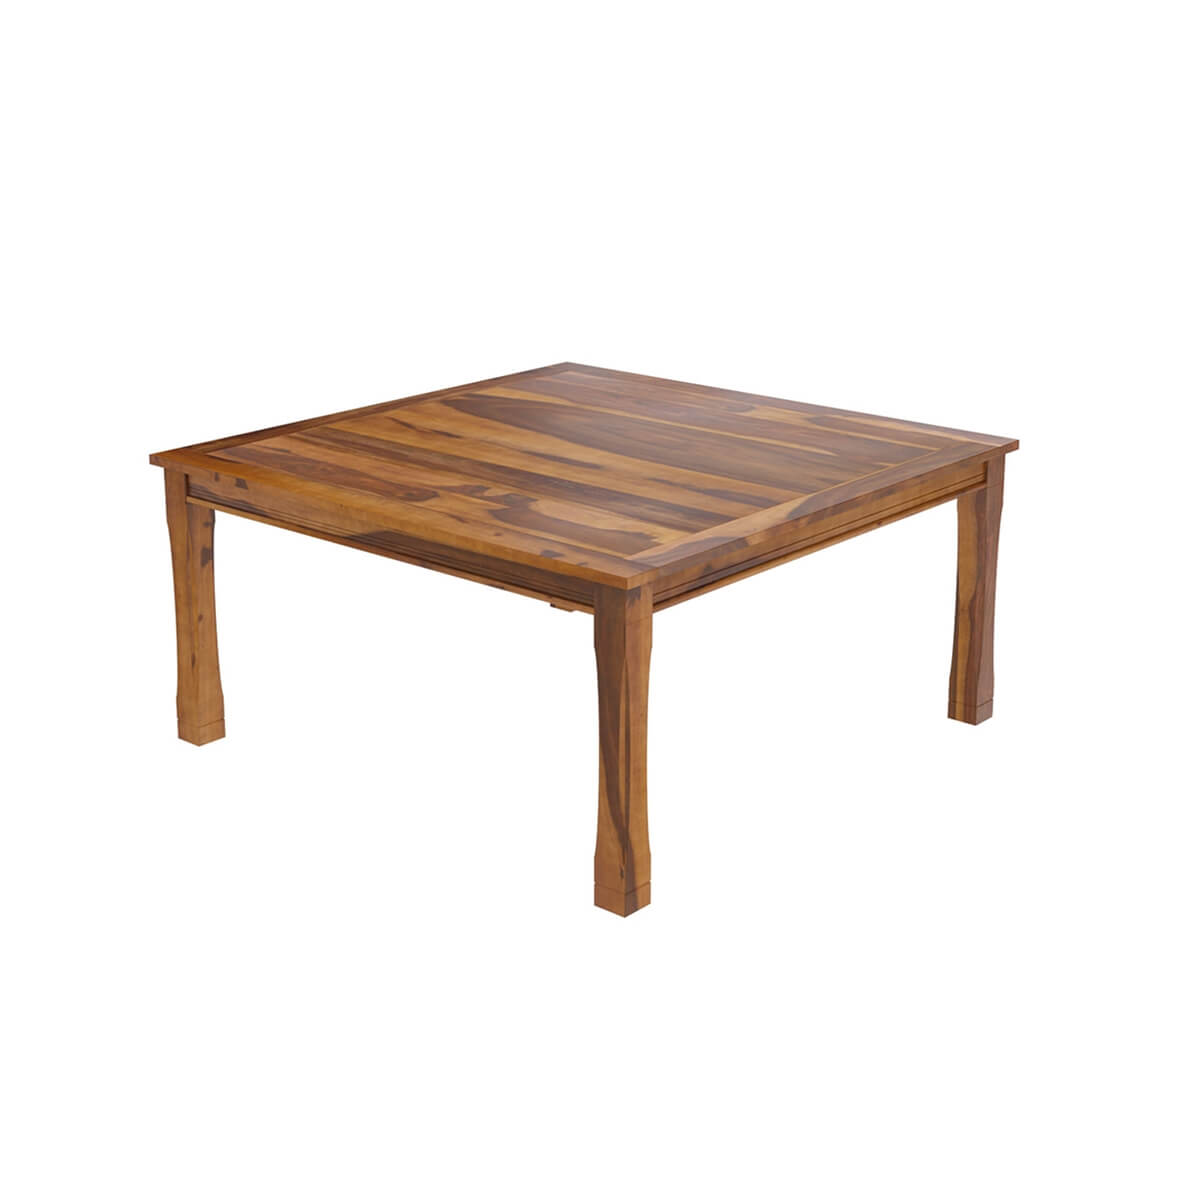 dallas ranch transitional square wood dining room table